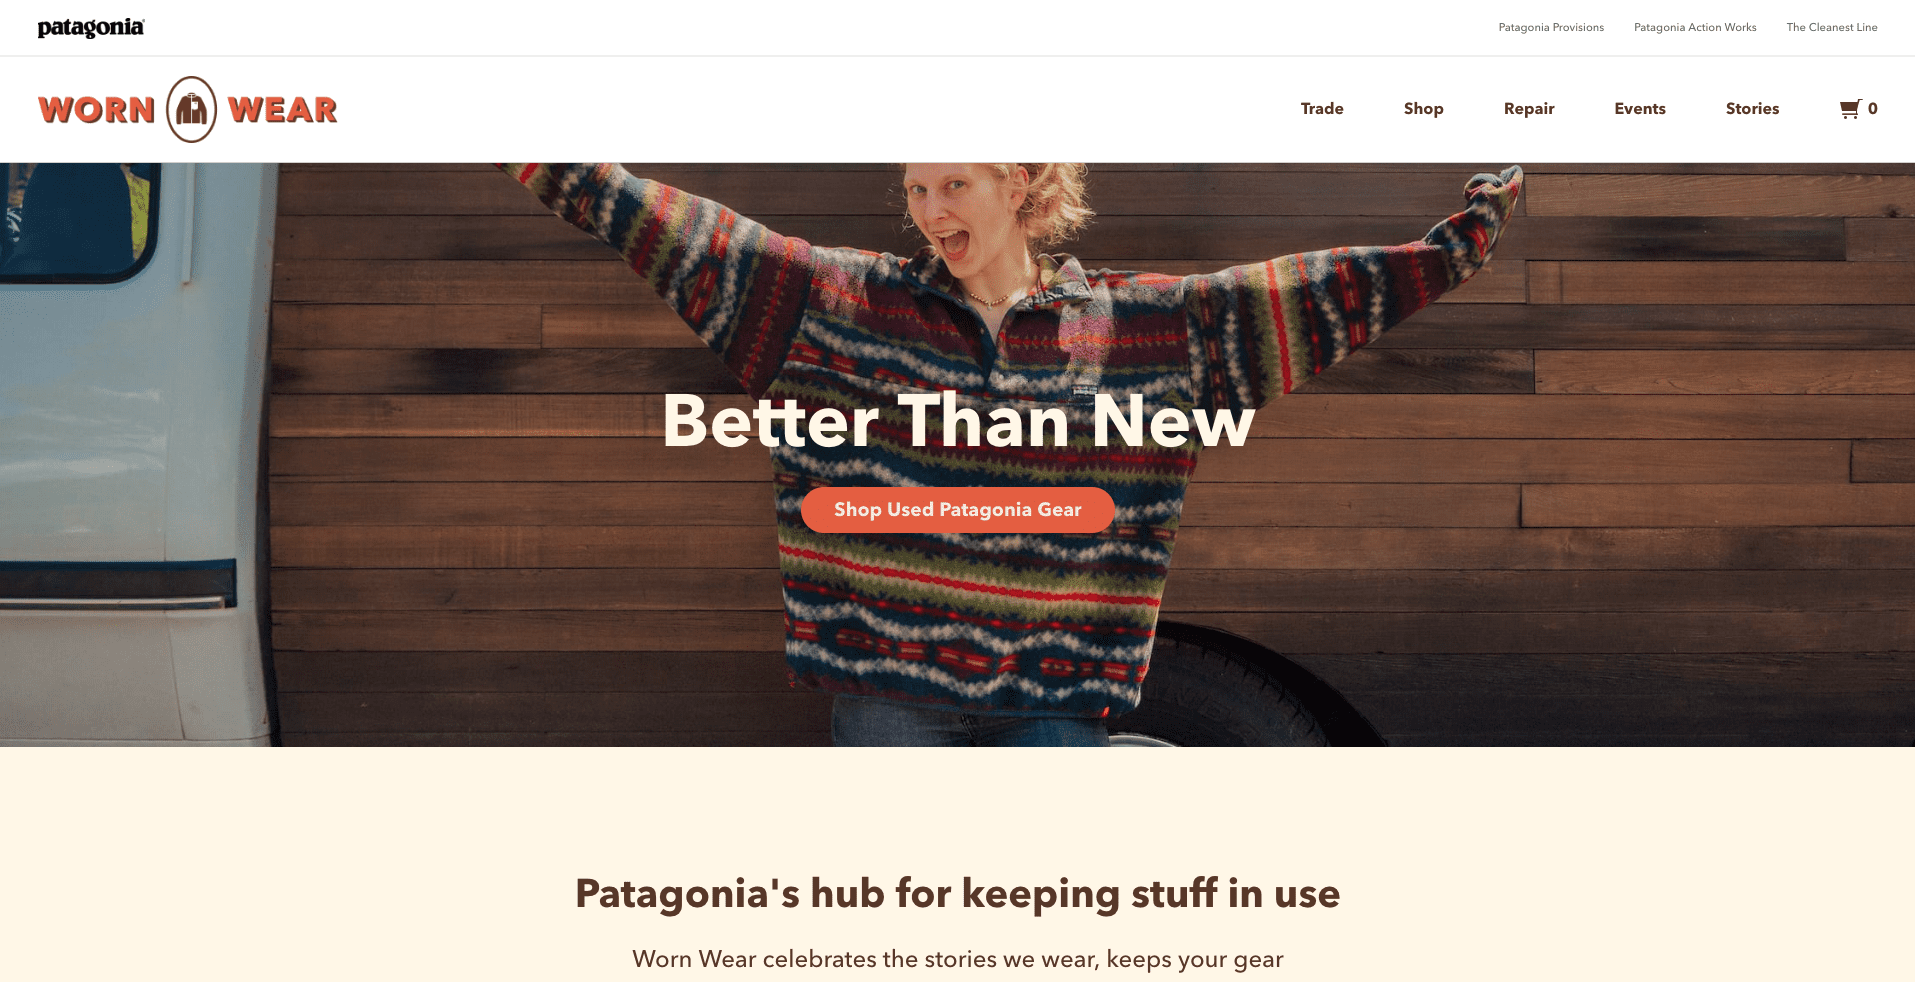 online brand experience - Patagonia worn wear